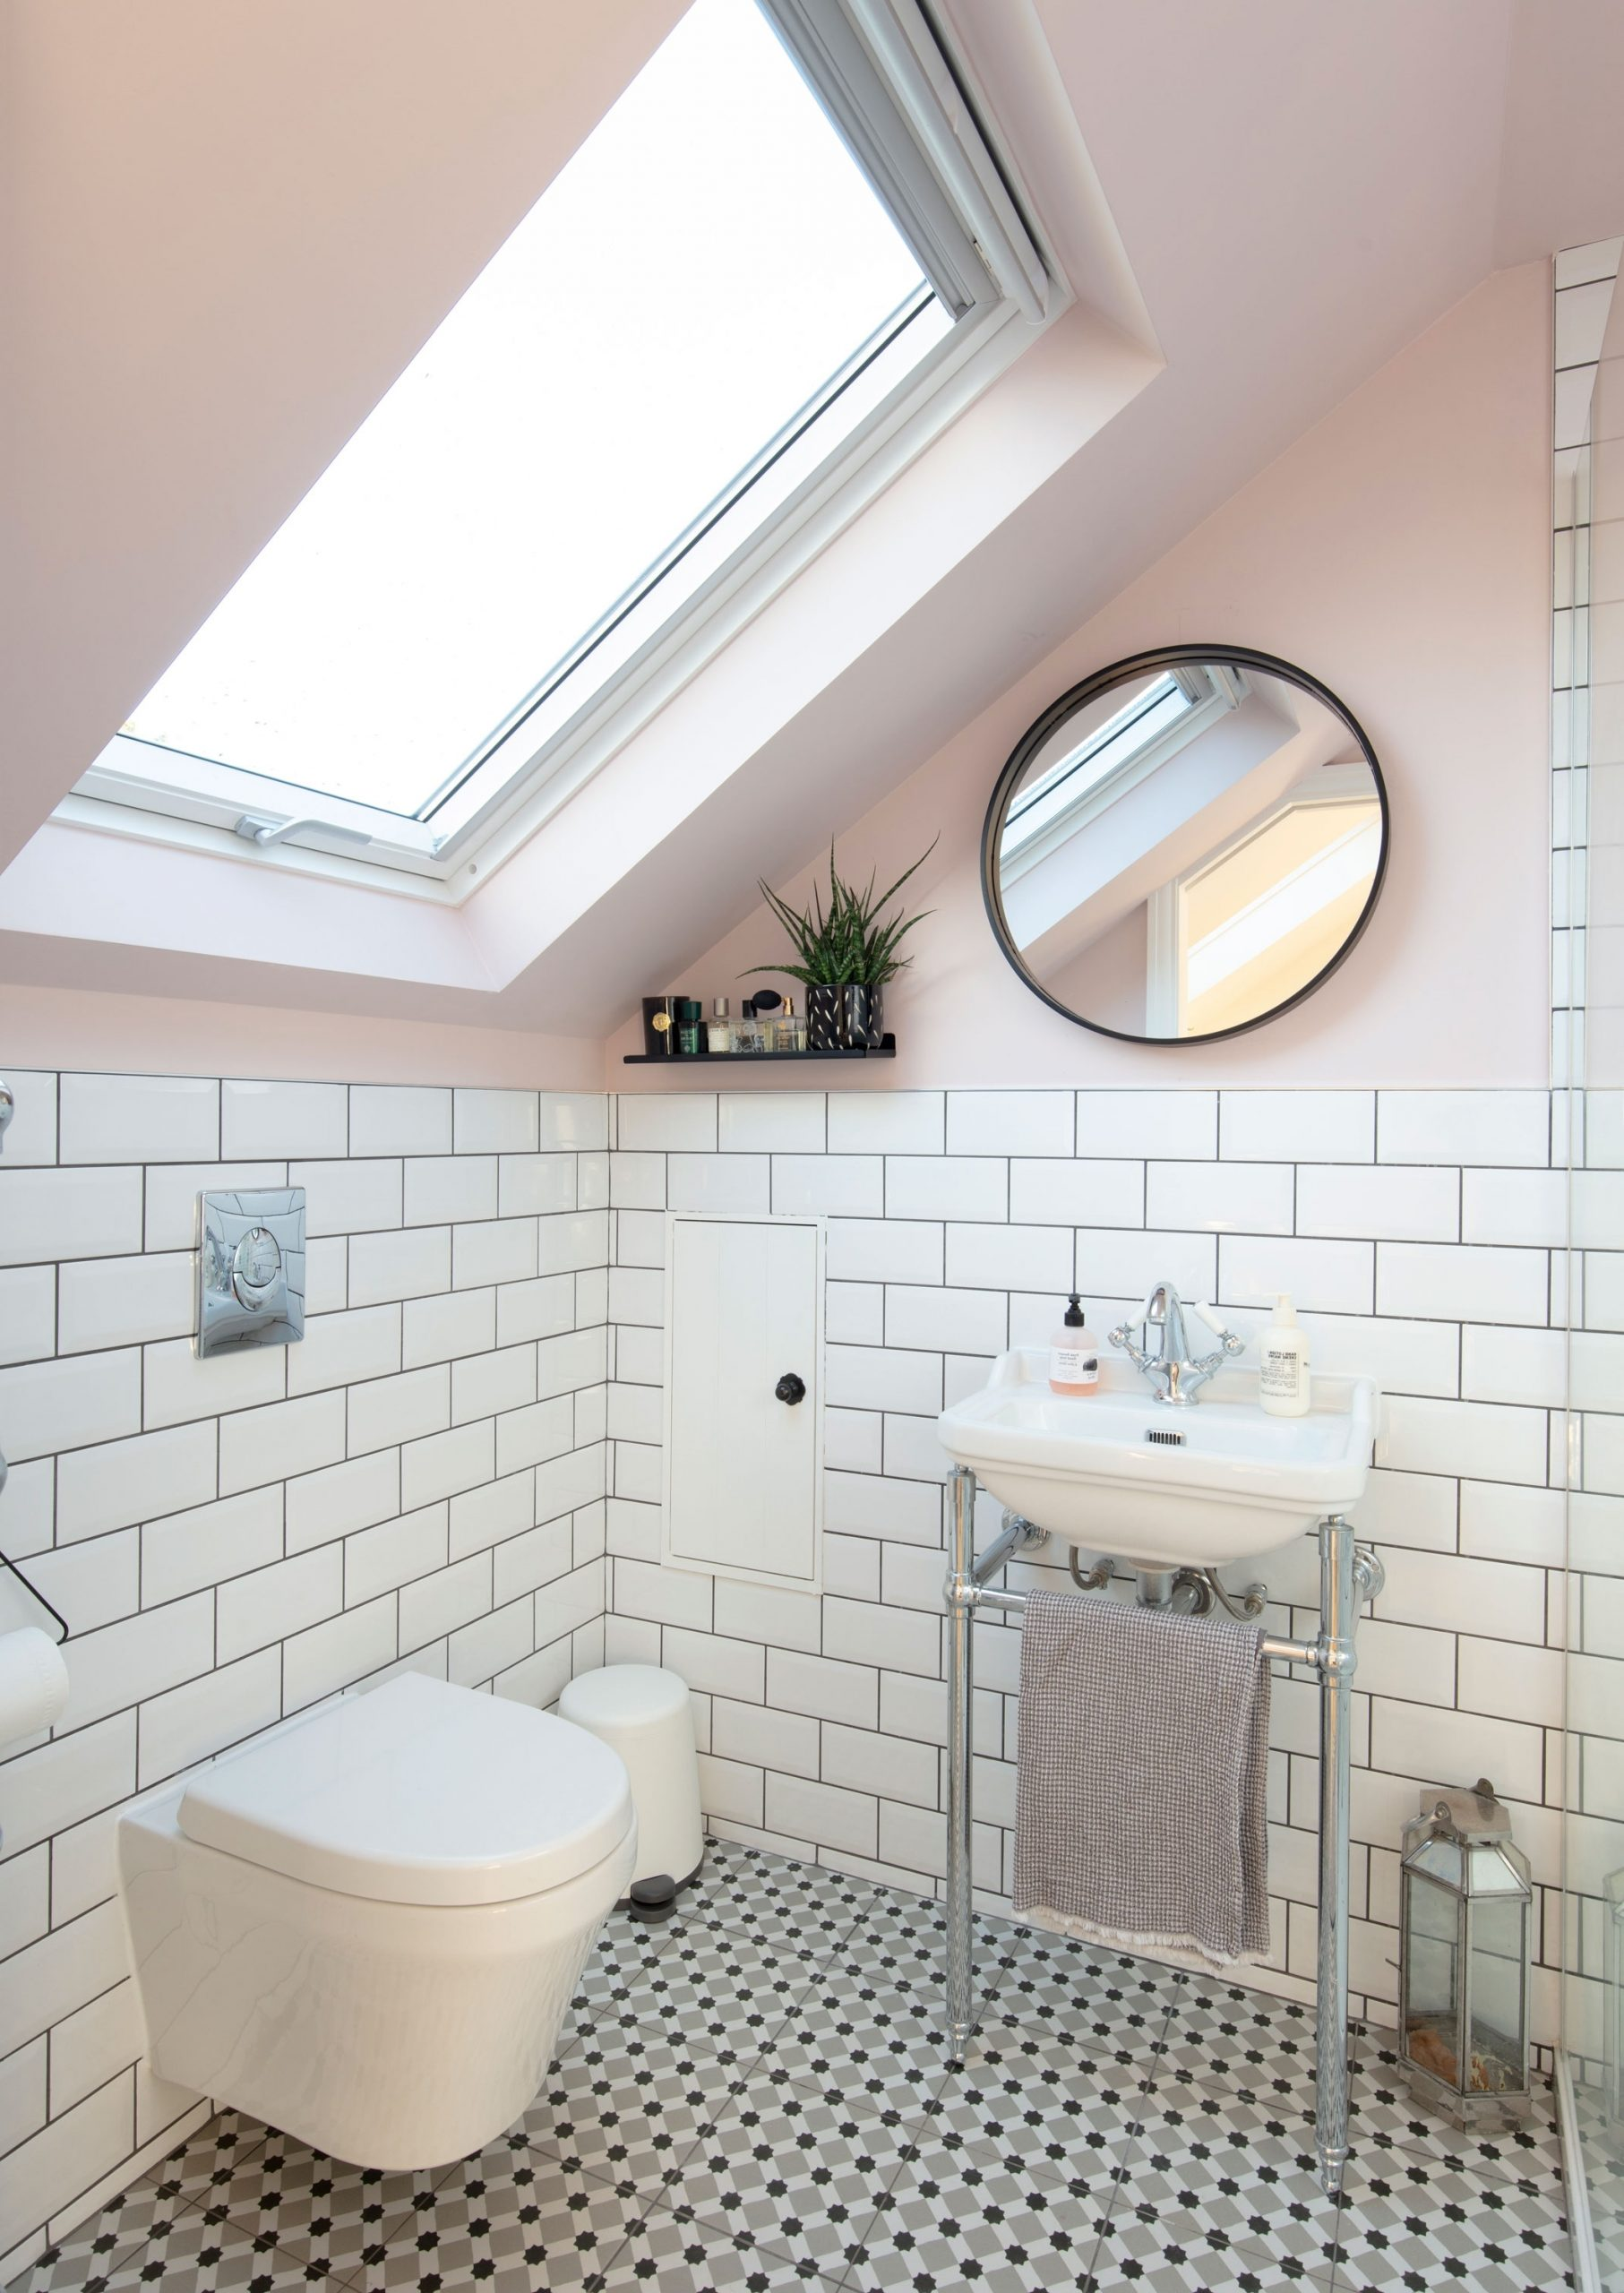 Small Bathroom Design Ideas: 16 Ways To Make A Small 20+ Small Bathroom With Sloped Ceiling Ideas